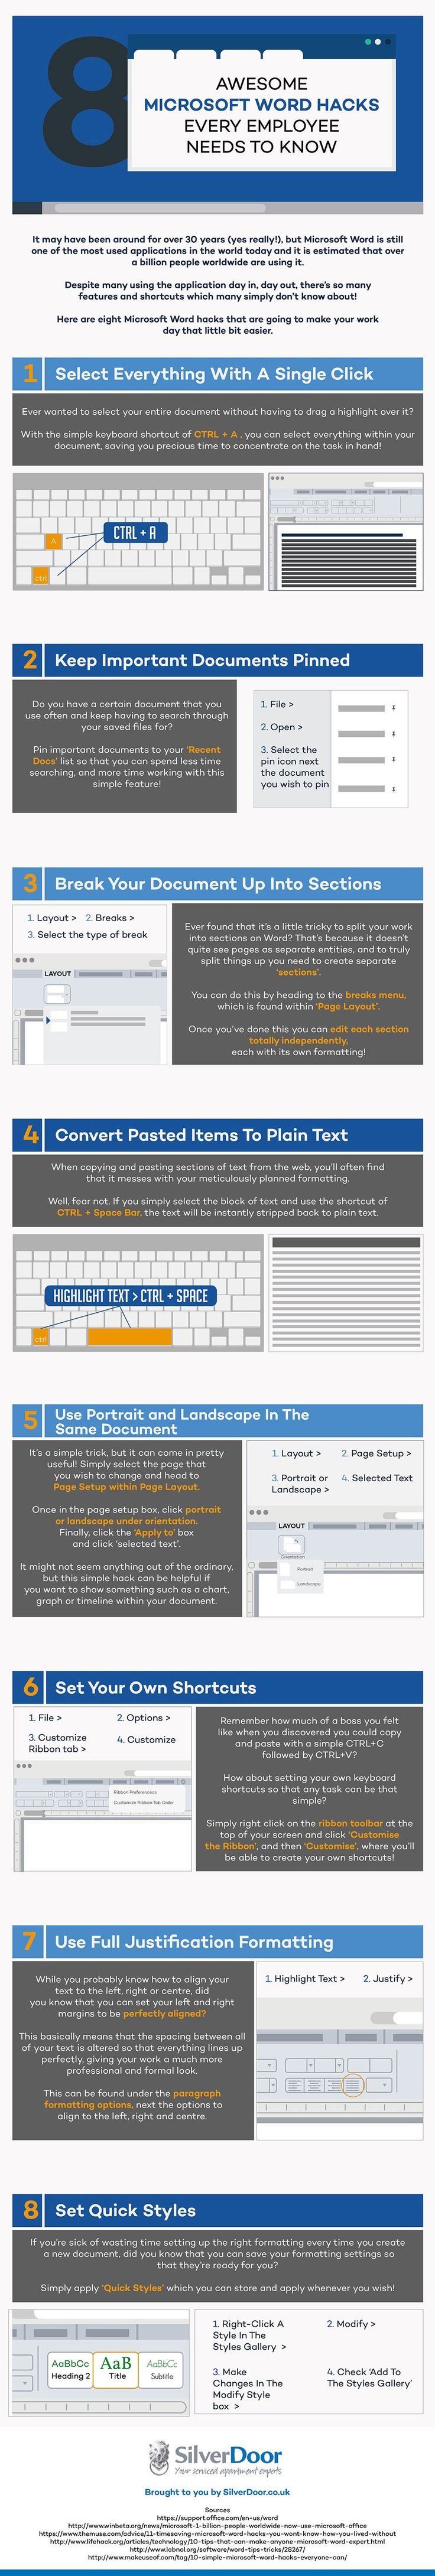 8 Awesome Microsoft Word Hacks (Infographic)